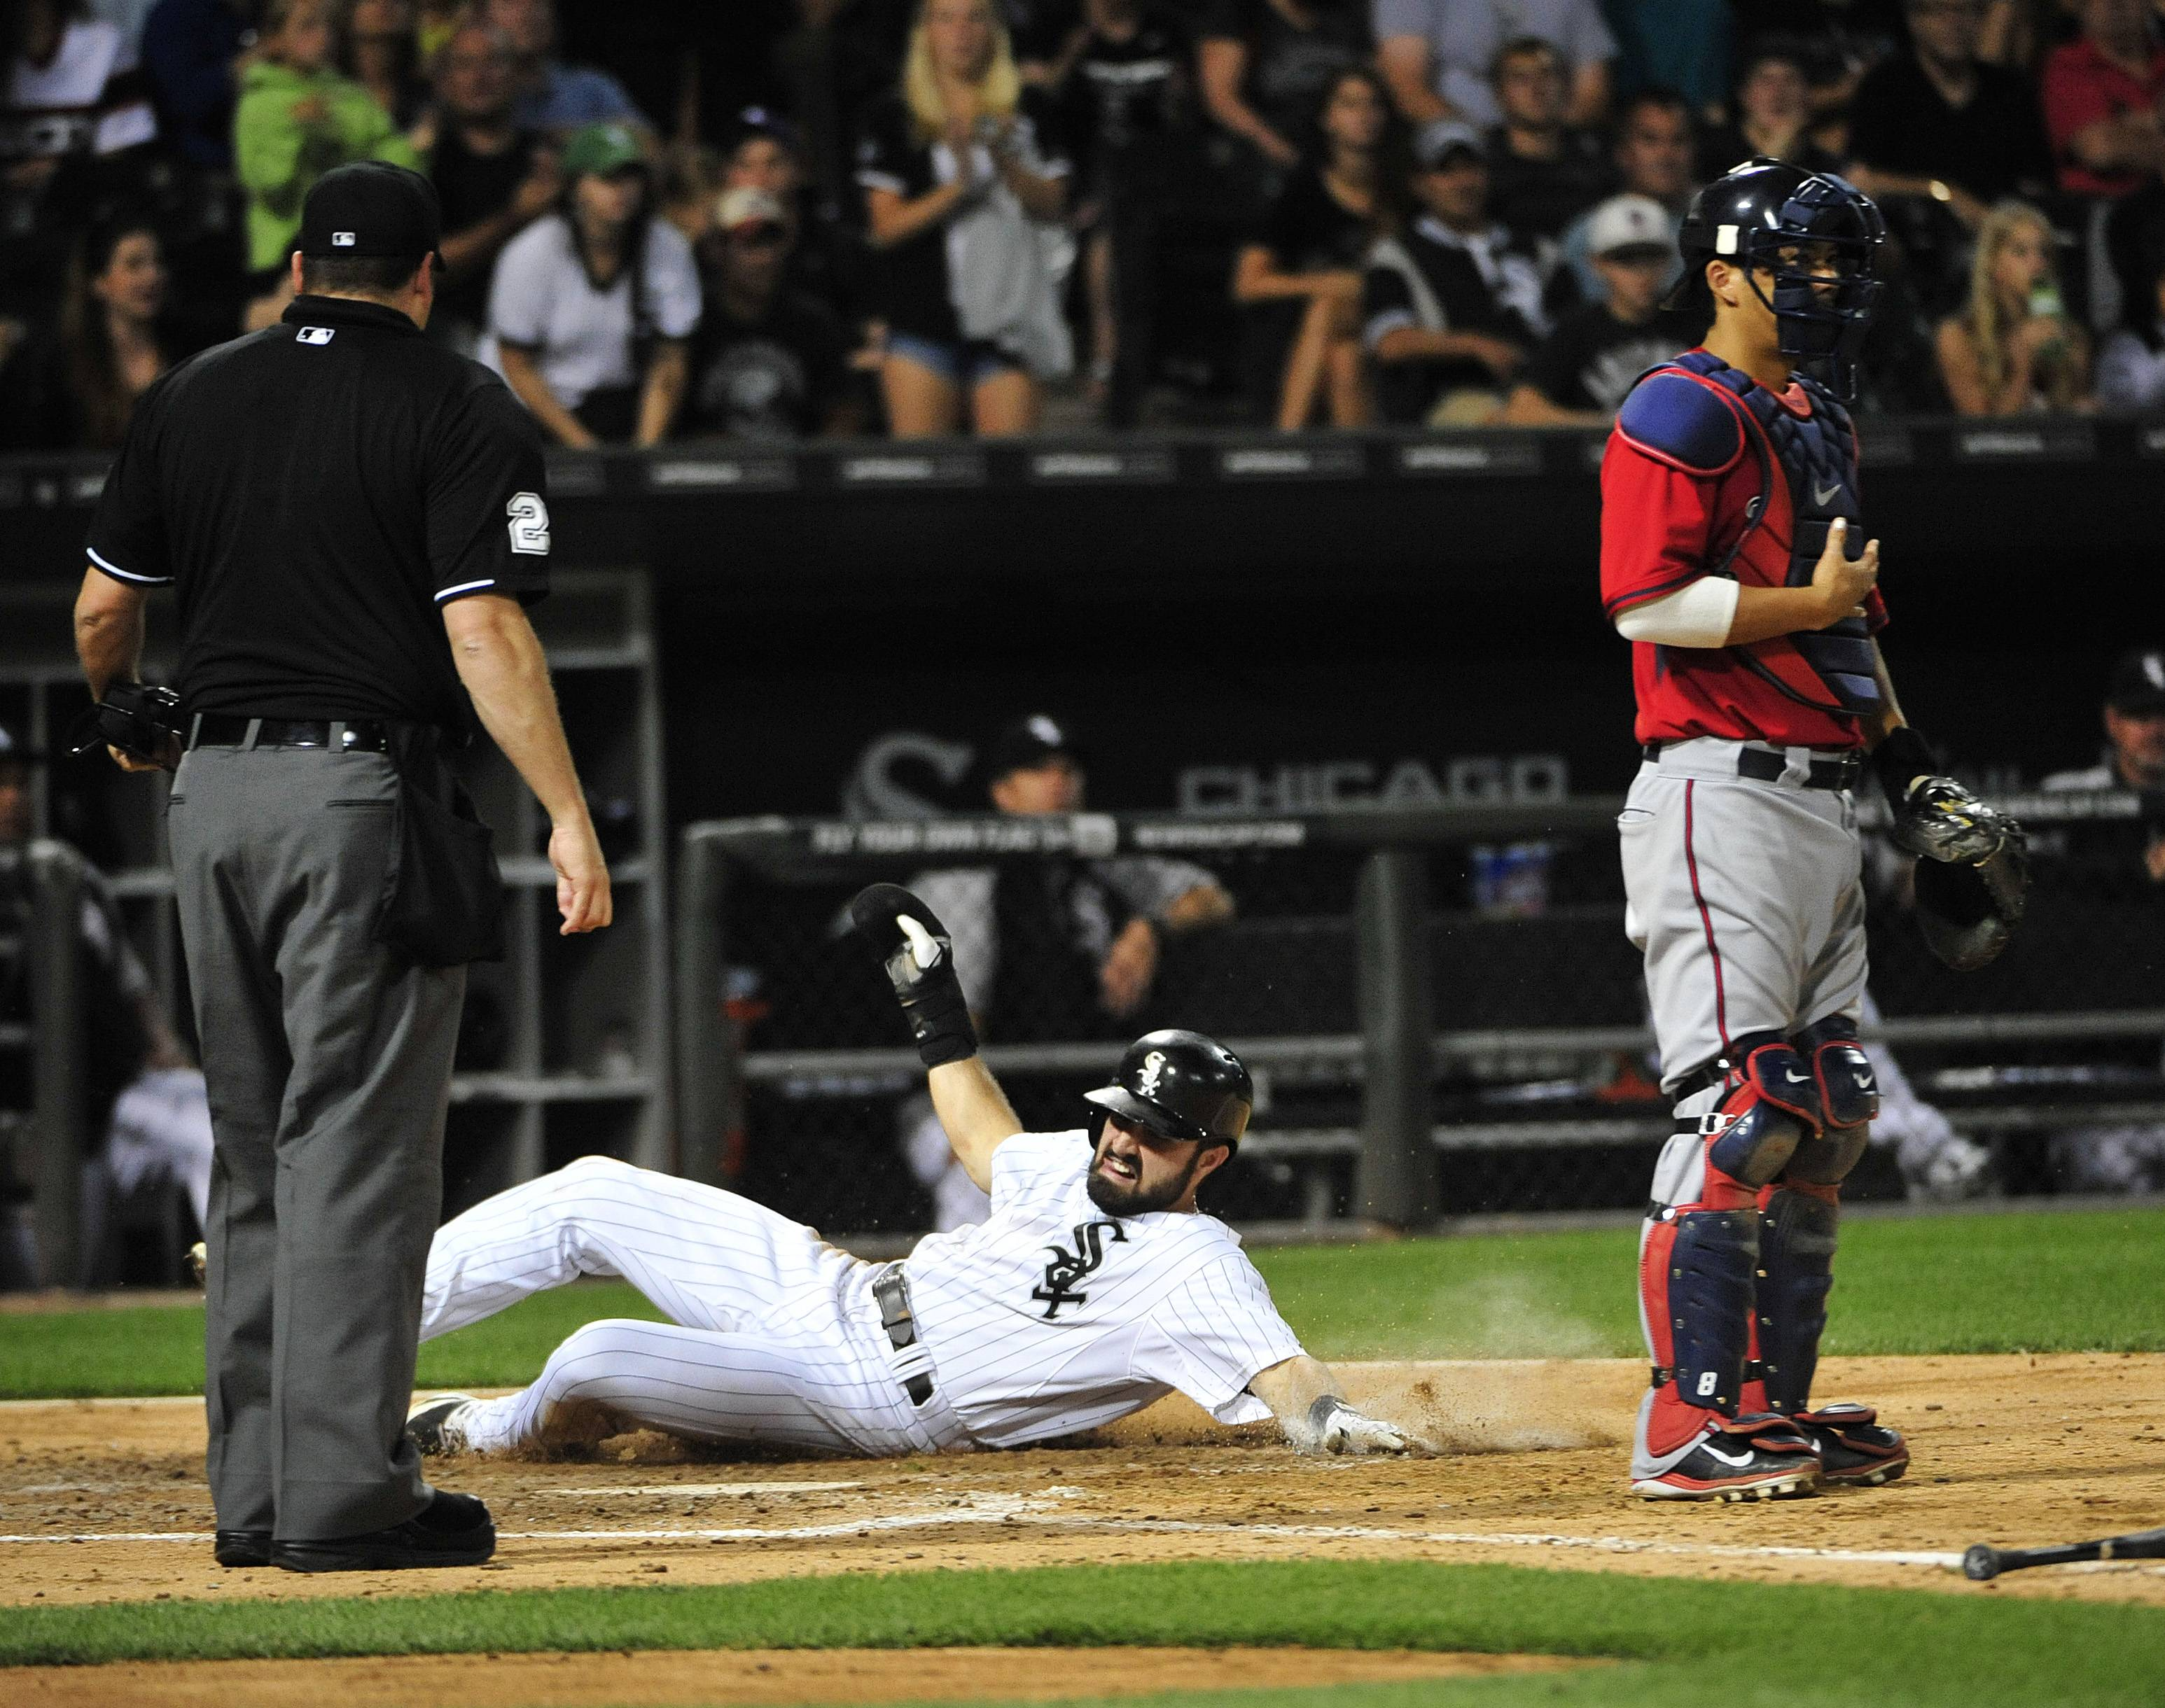 Adam Eaton, center, scores on a single by Jose Abreu as Twins catcher Kurt Suzuki stands nearby during Friday's game at U.S. Cellular Field.